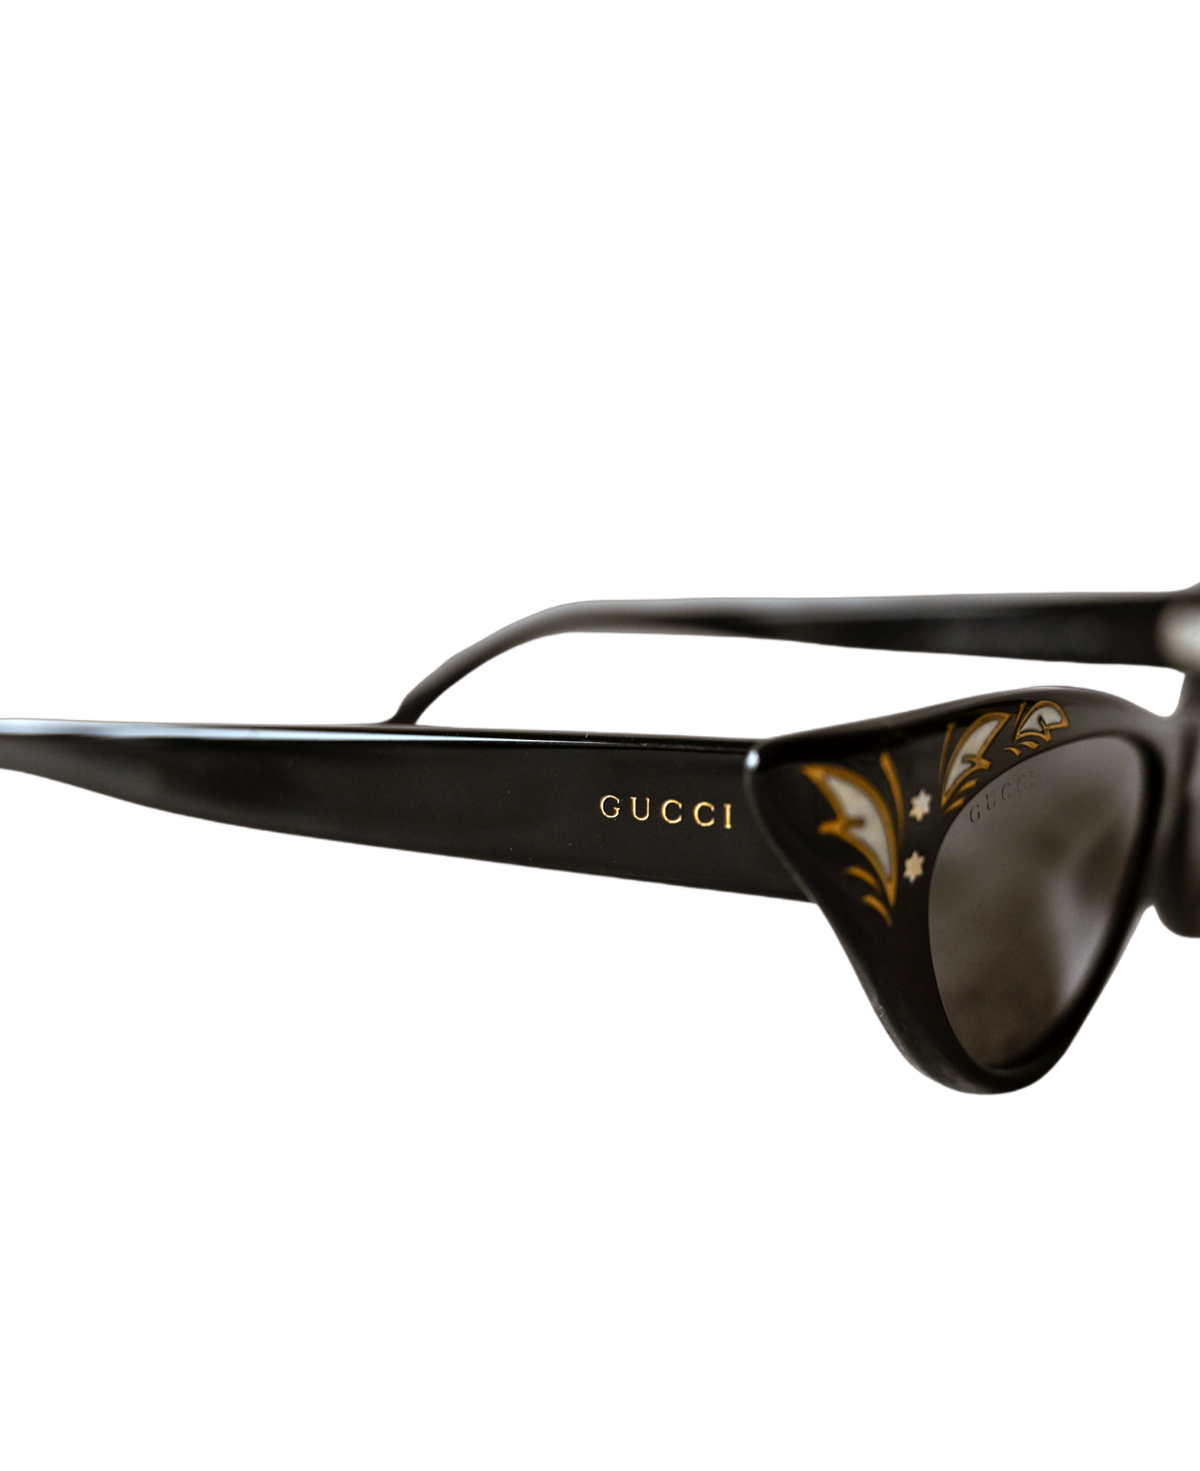 Gucci Cat Eye Brille mit Verzierung